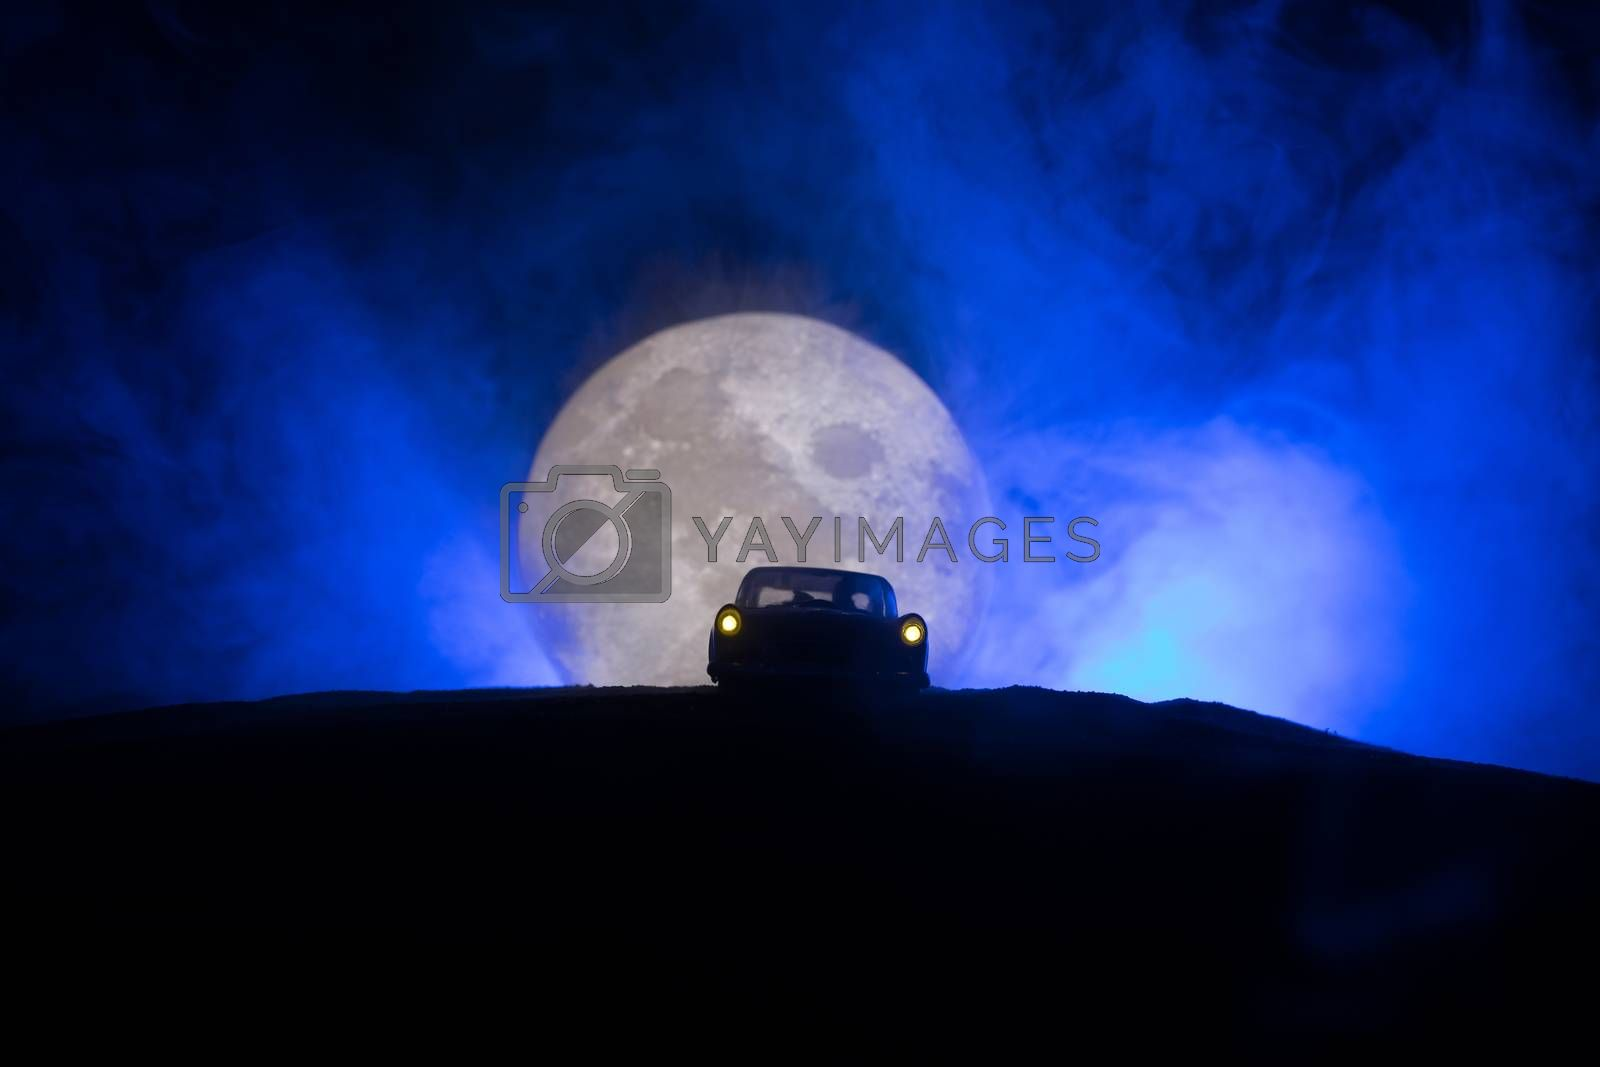 Silhouette of the car and two lovers inside with lunar background. Happy couple at night under moonlight. Creative artwork table decoration.